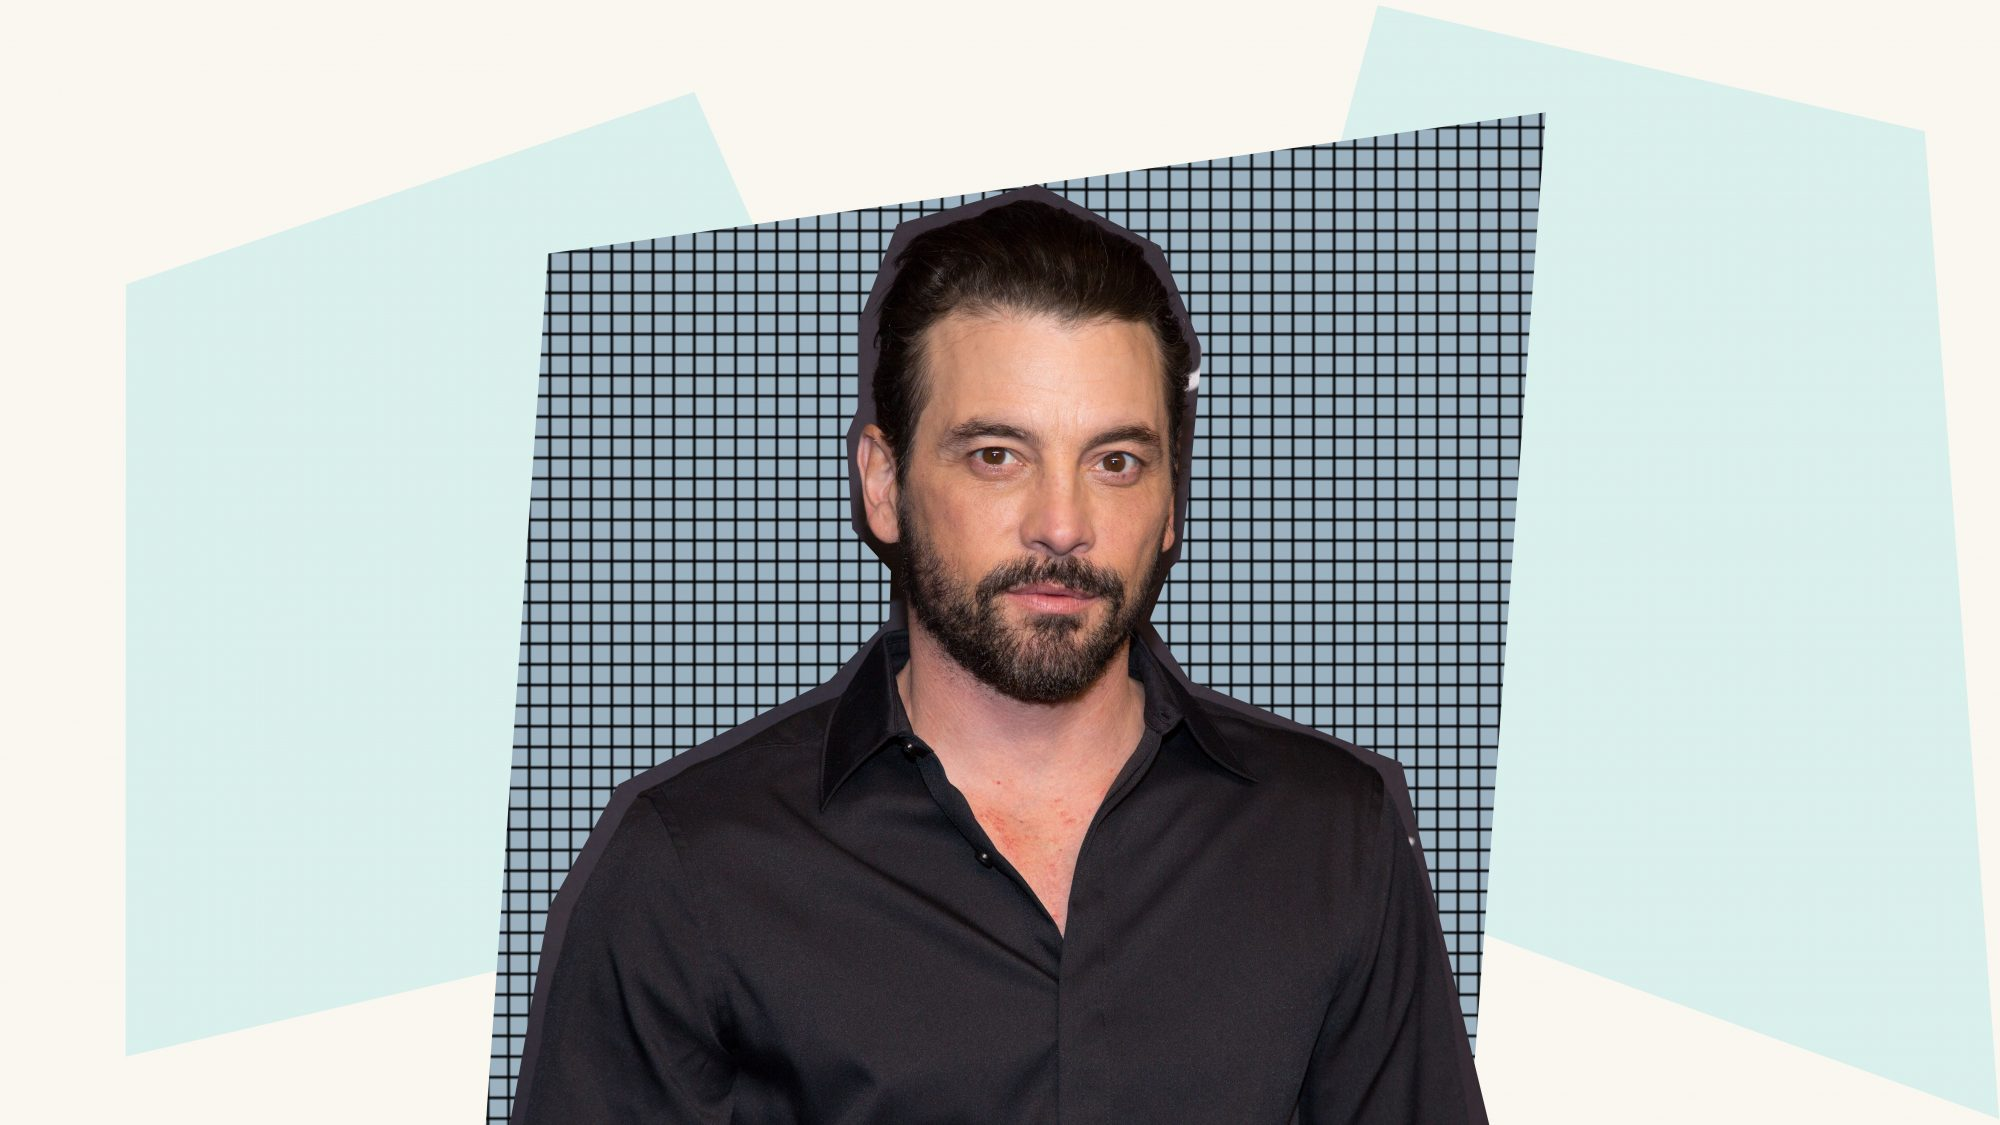 Skeet Ulrich Gives a 'Rare Look' Inside His Open Heart Surgery Nearly 40 Years Ago with Graphic Photo